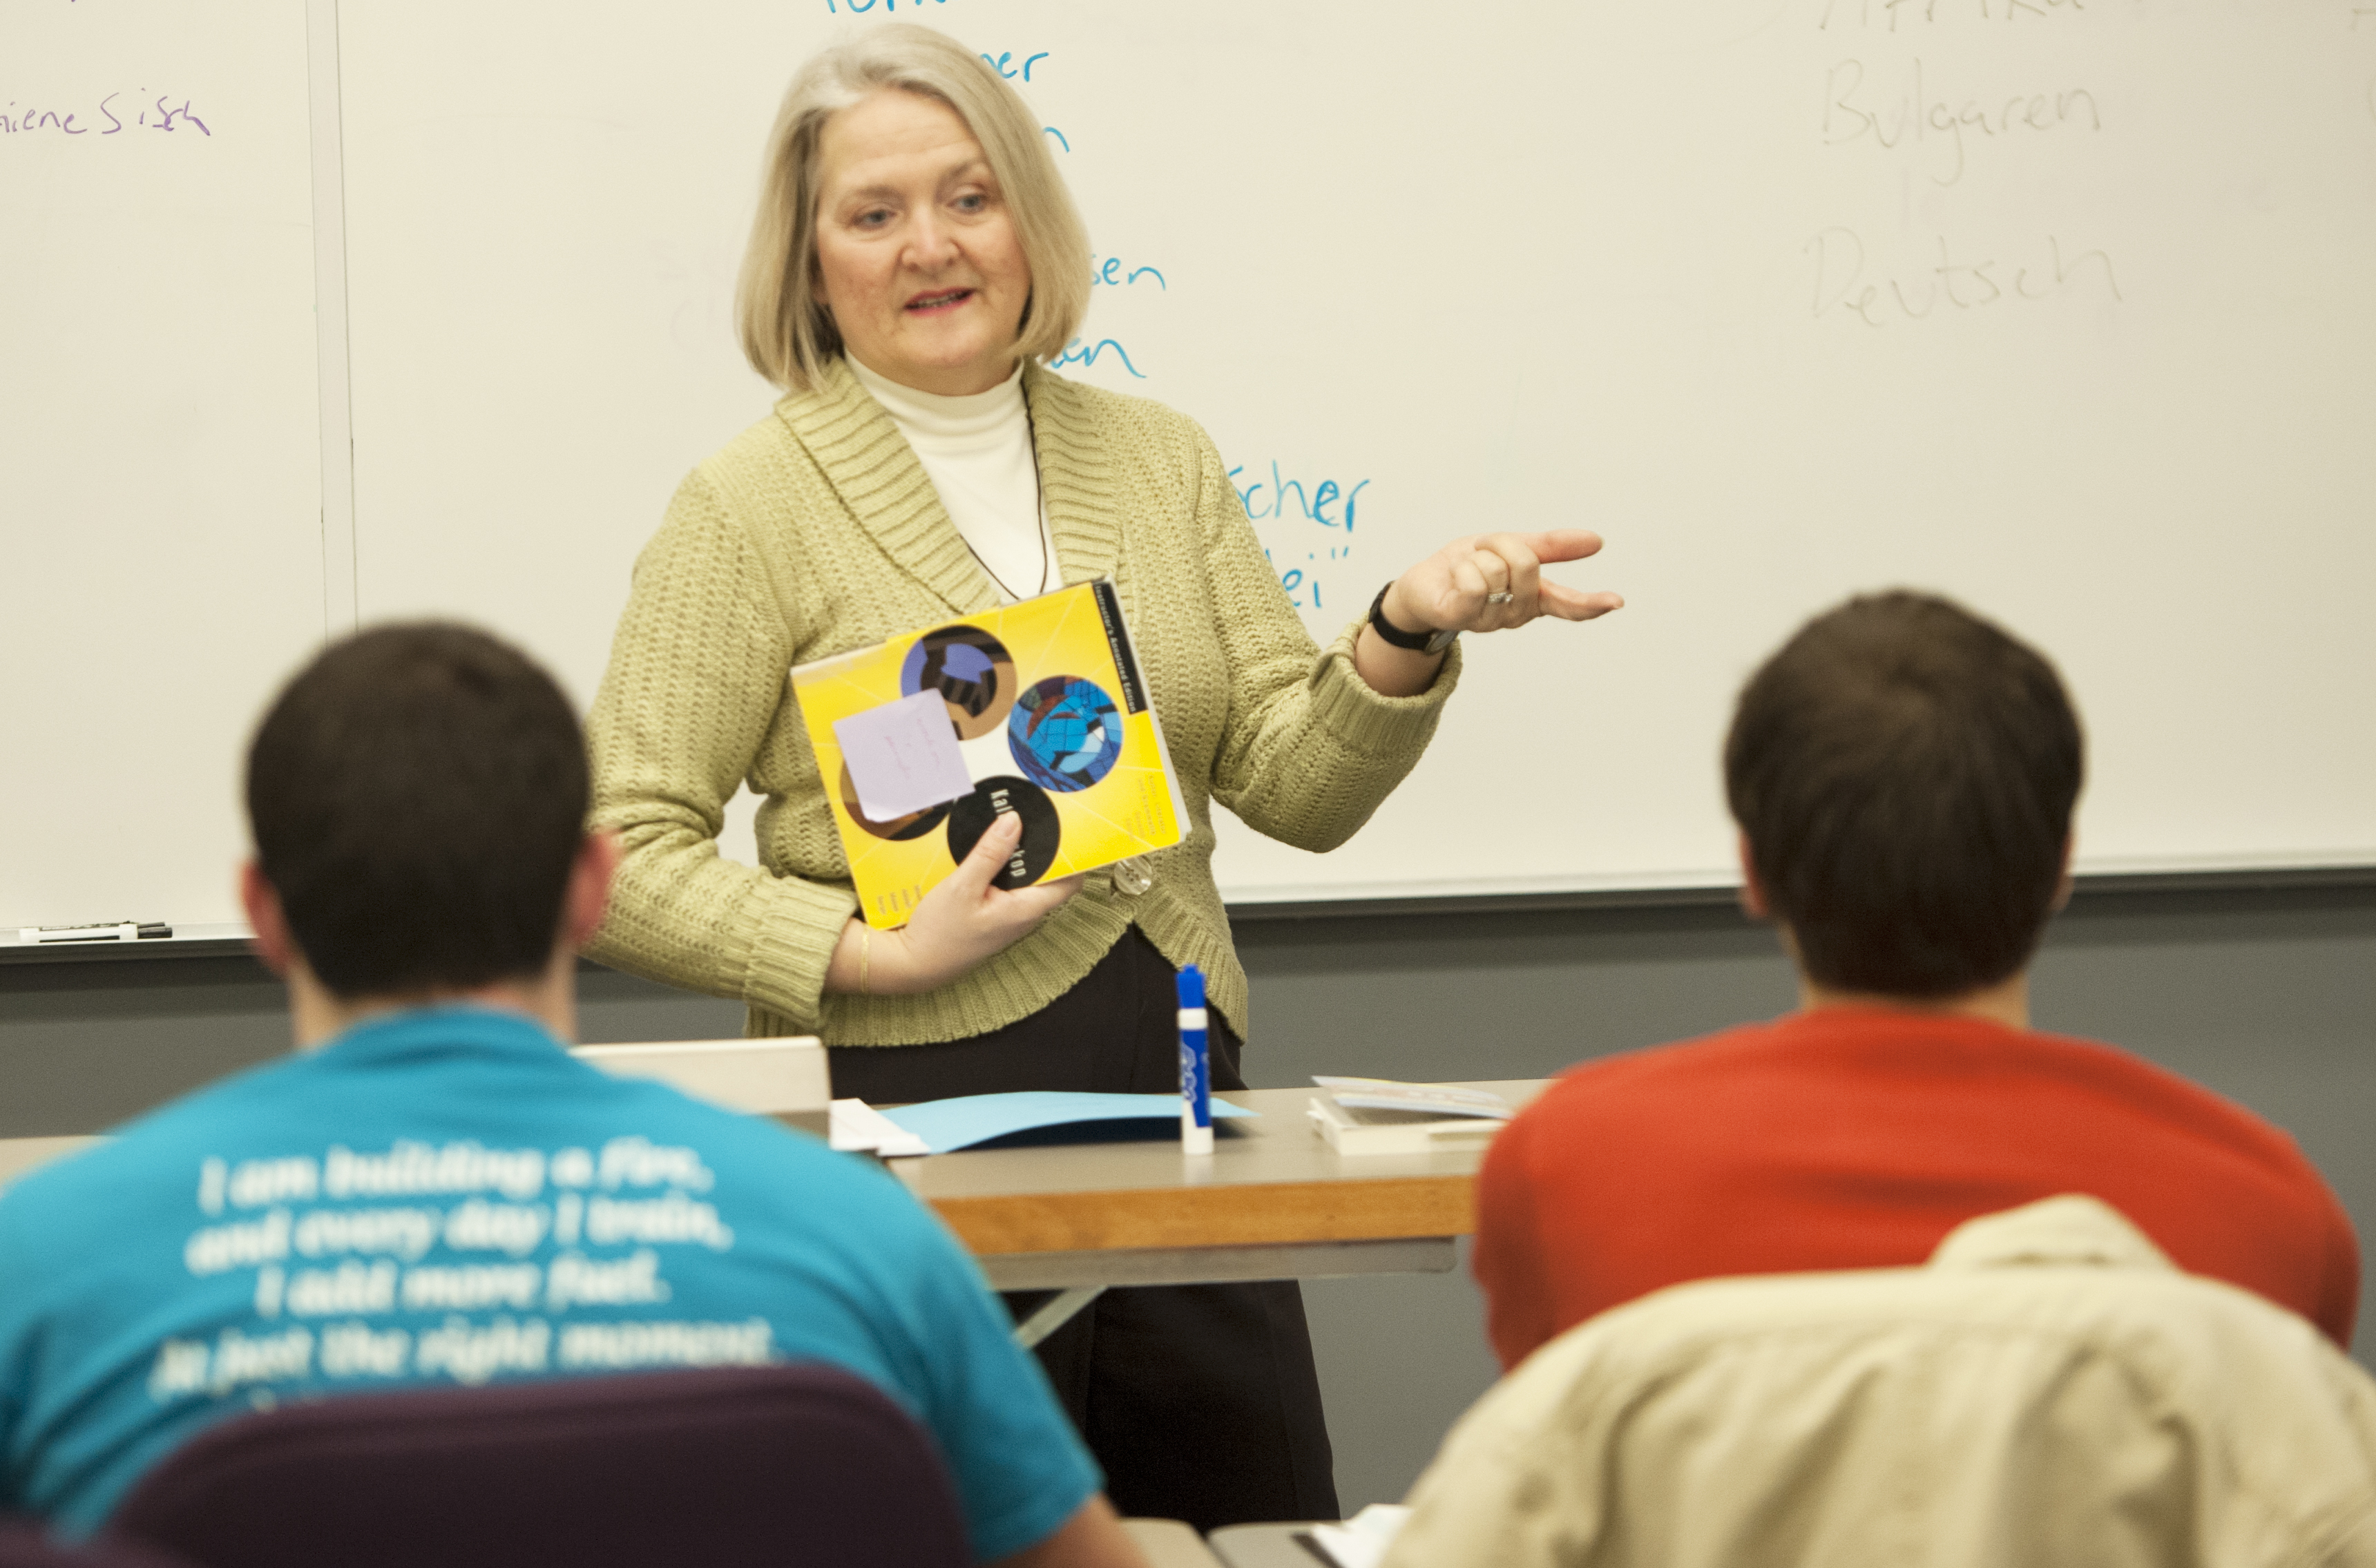 Students interested in TESOL can learn about opportunities at a symposium on March 14.